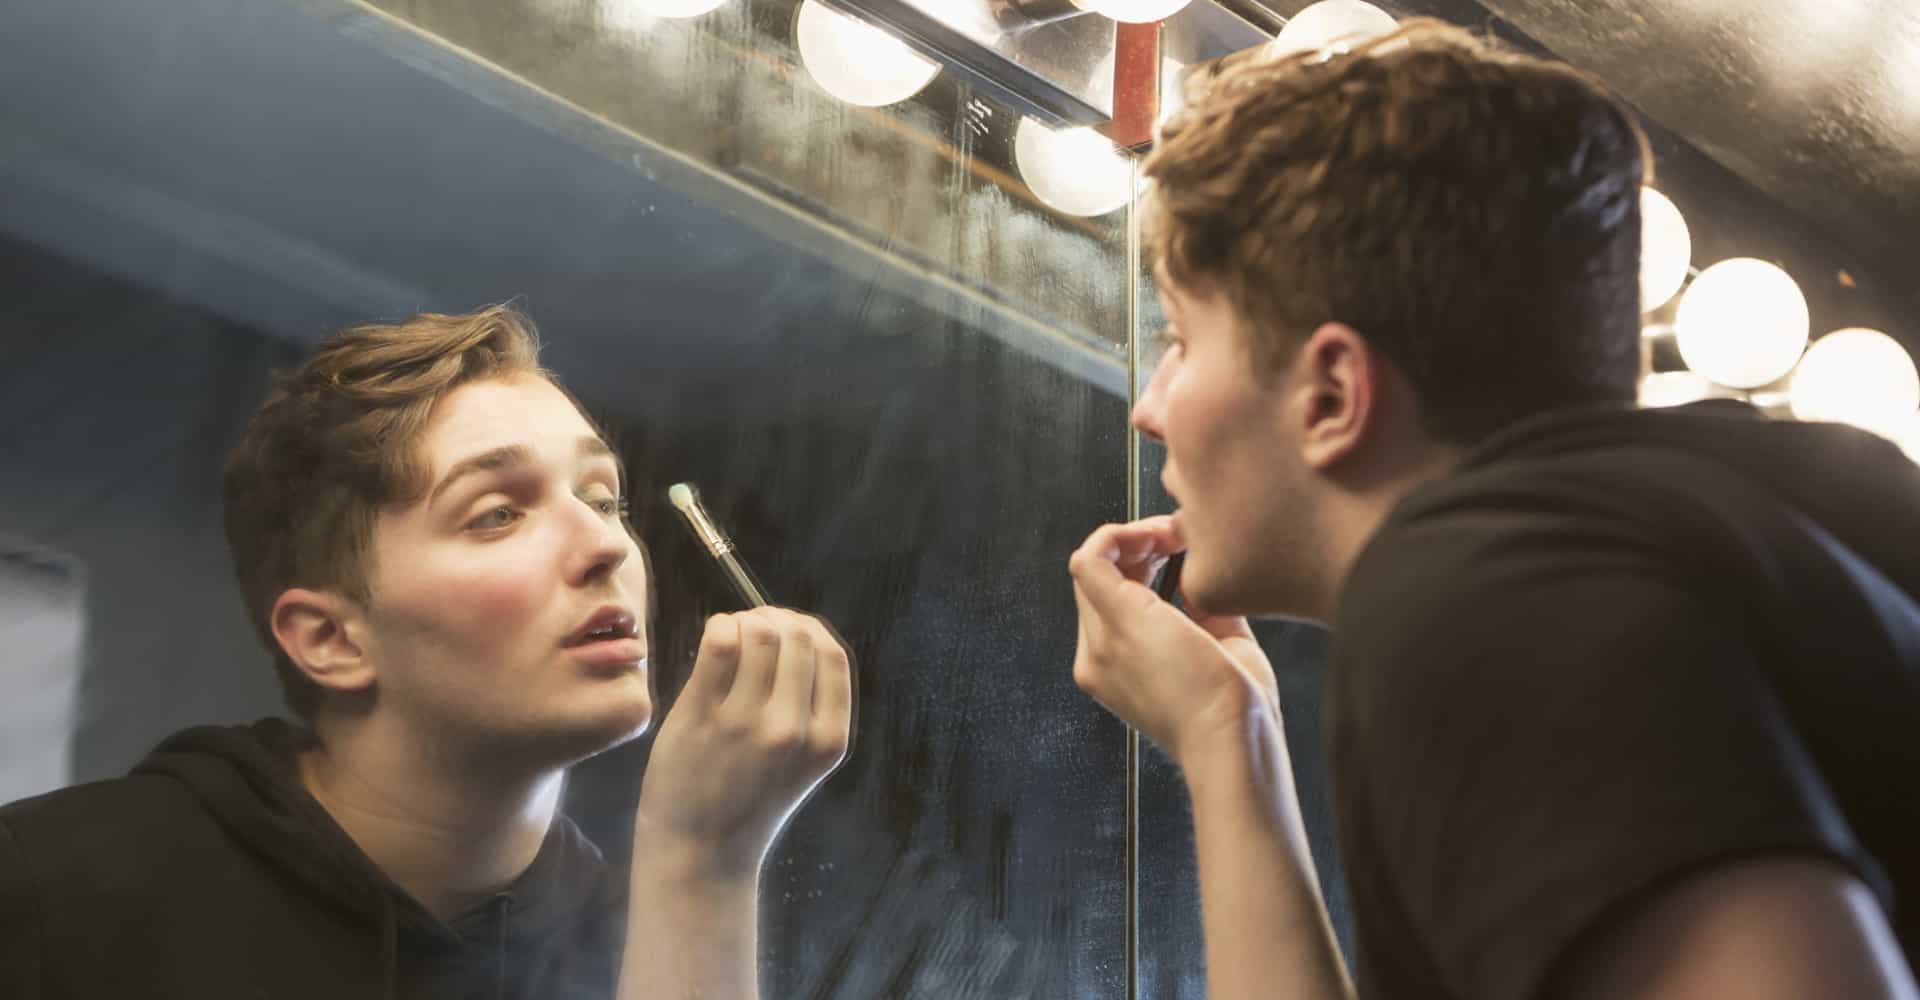 This beauty brand is looking past gender